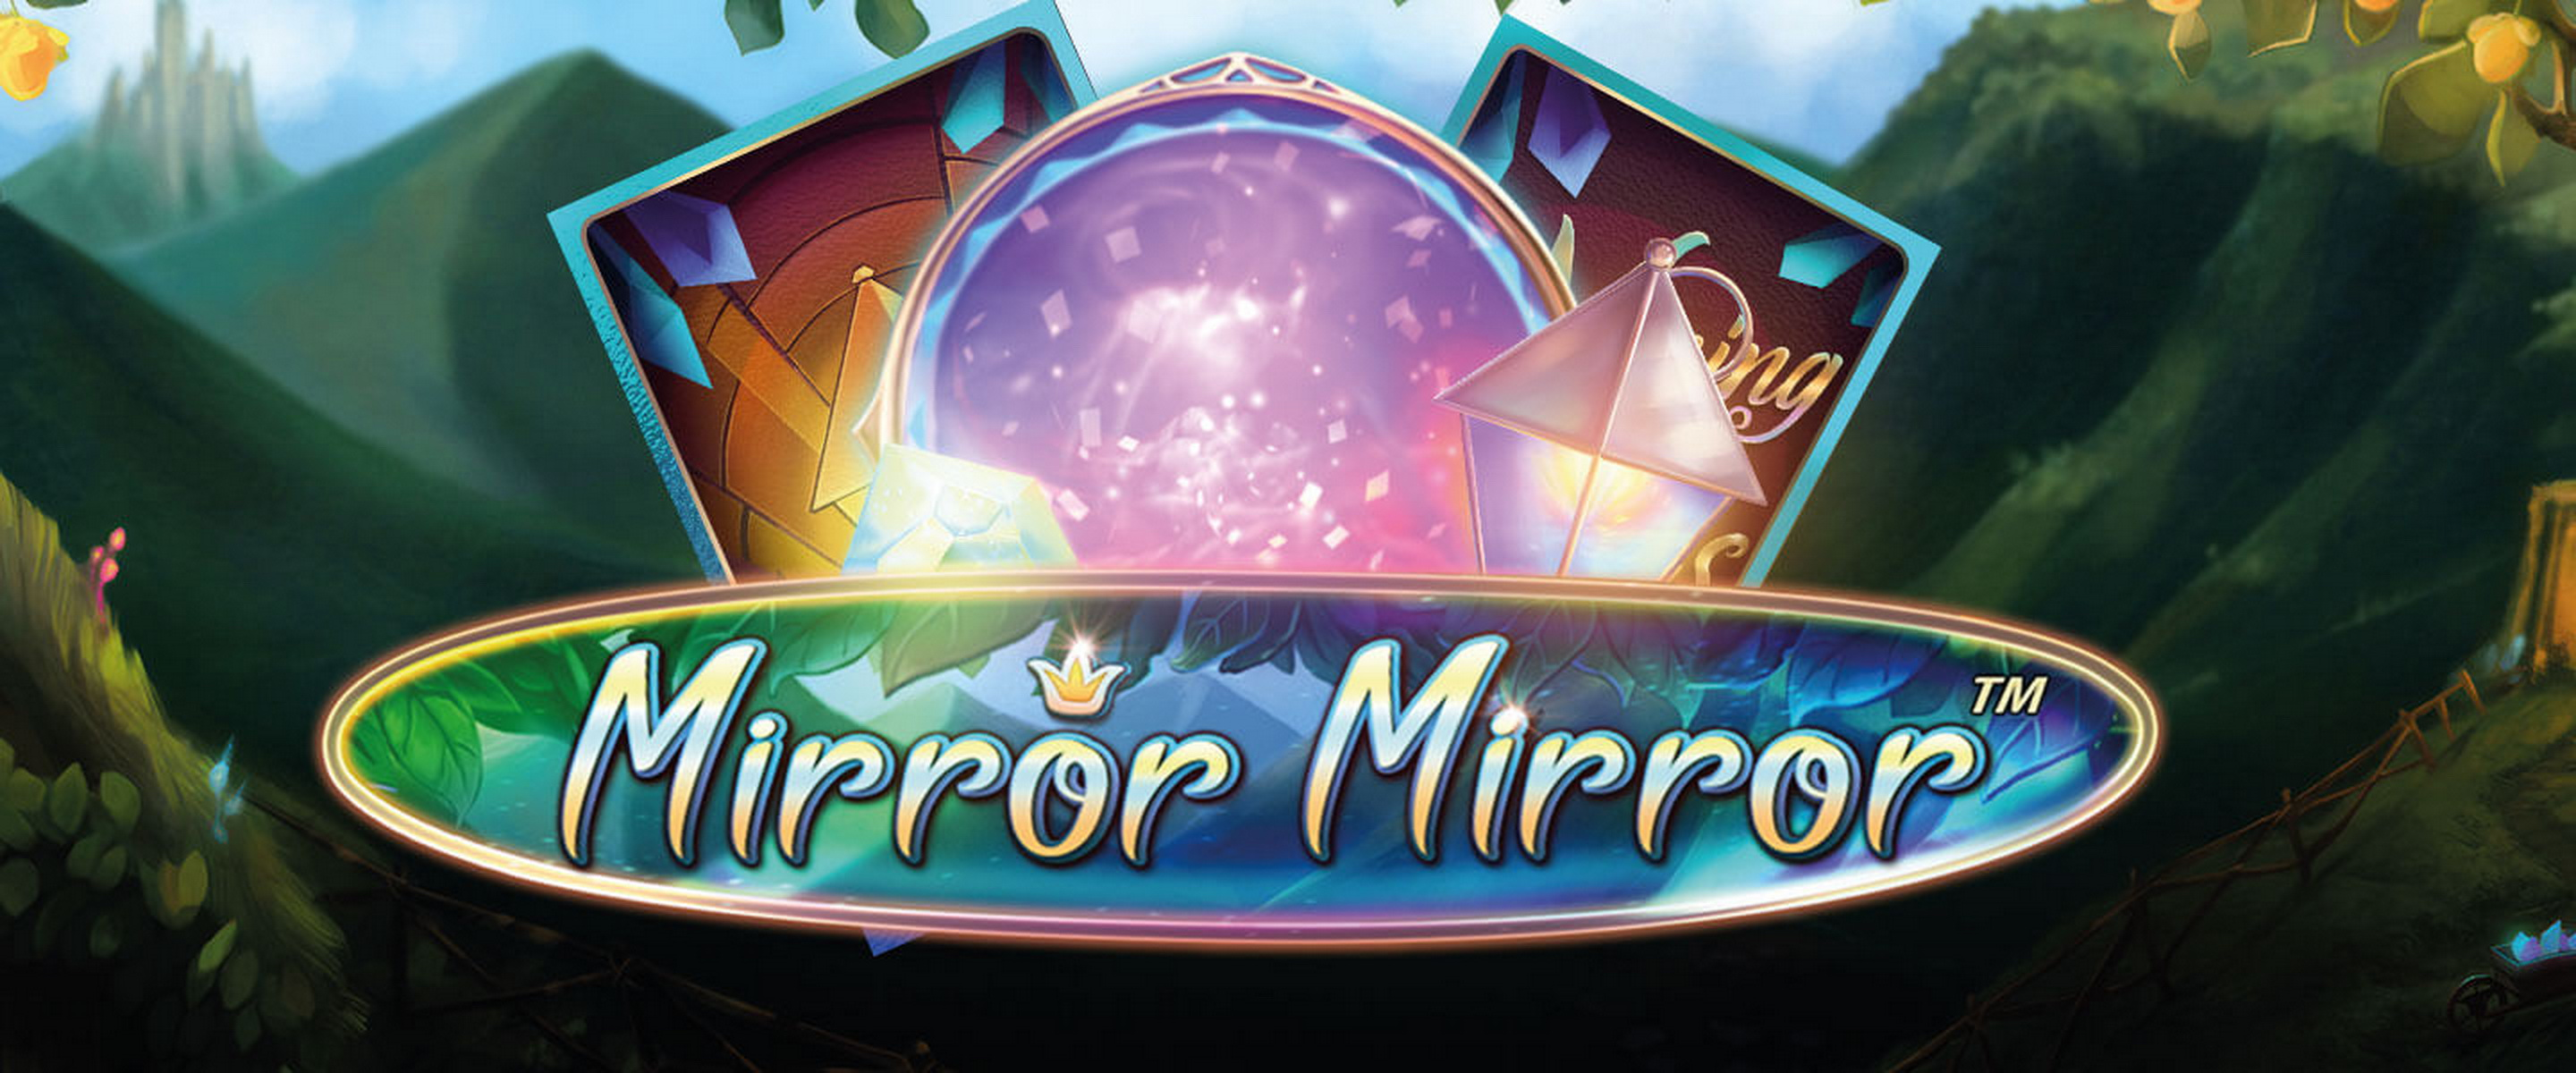 Reels in Mirror Mirror (Playreels) Slot Game by Playreels